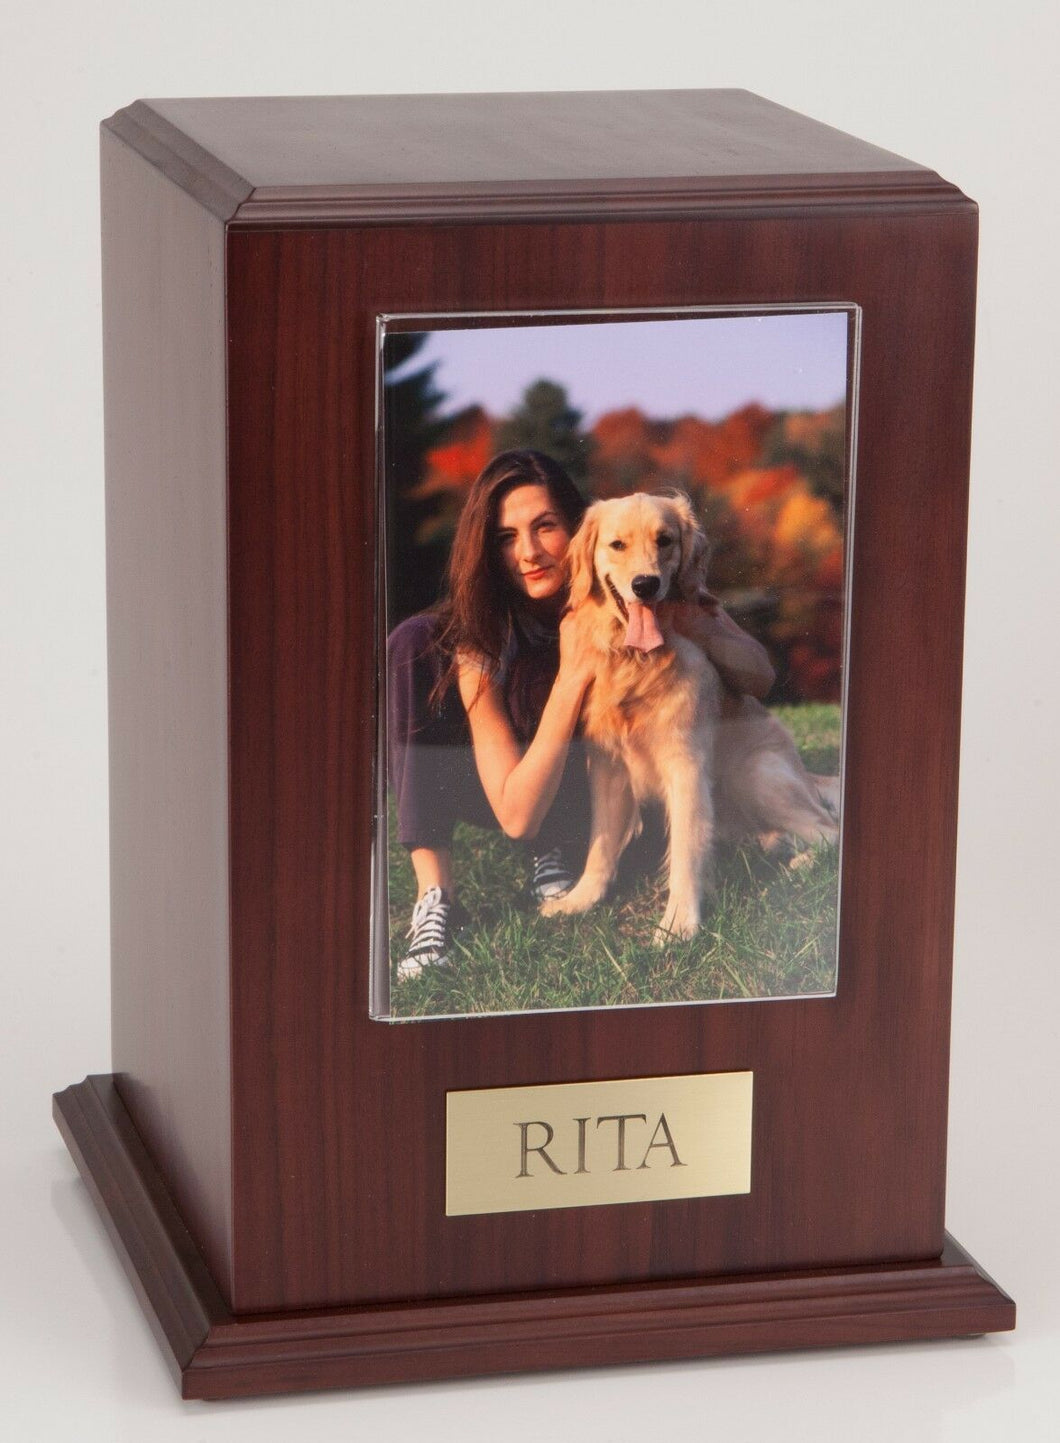 Small 35 Cubic Ins Walnut Pet Tower Photo Urn for Ashes w/Engravable Nameplate